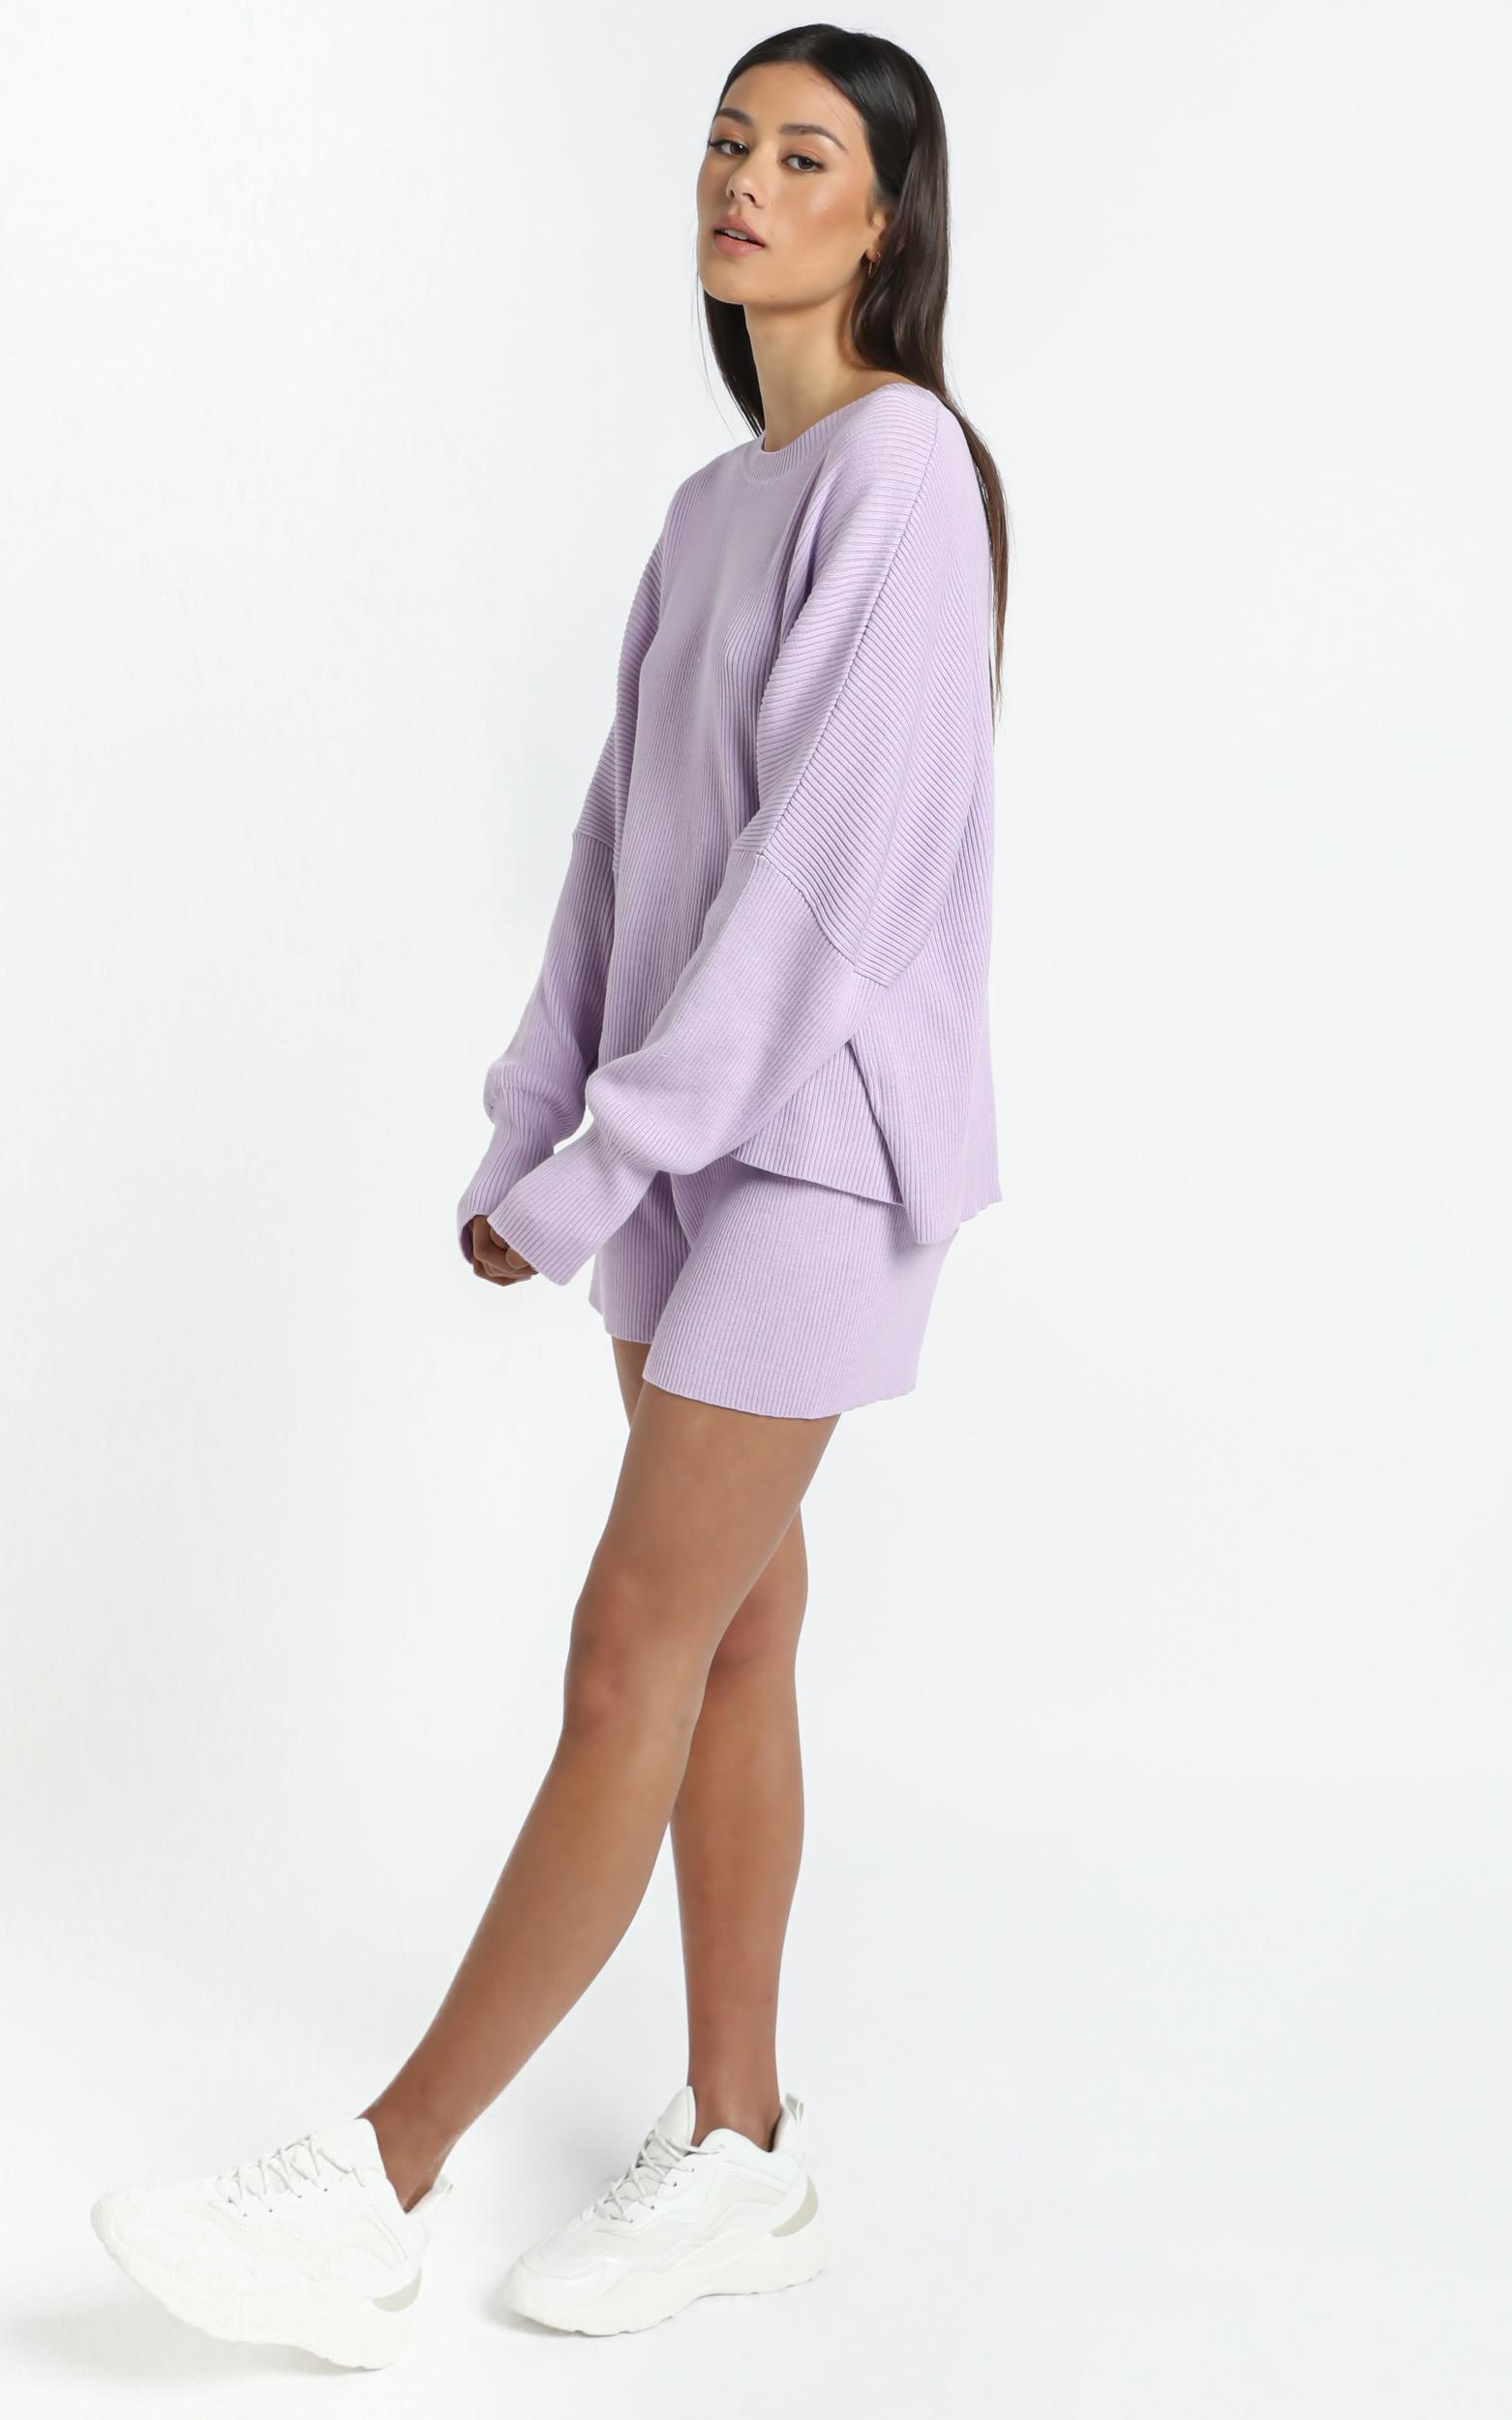 Lullaby Club - Alex Knit Sweater in Periwinkle - L/XL, Purple, hi-res image number null